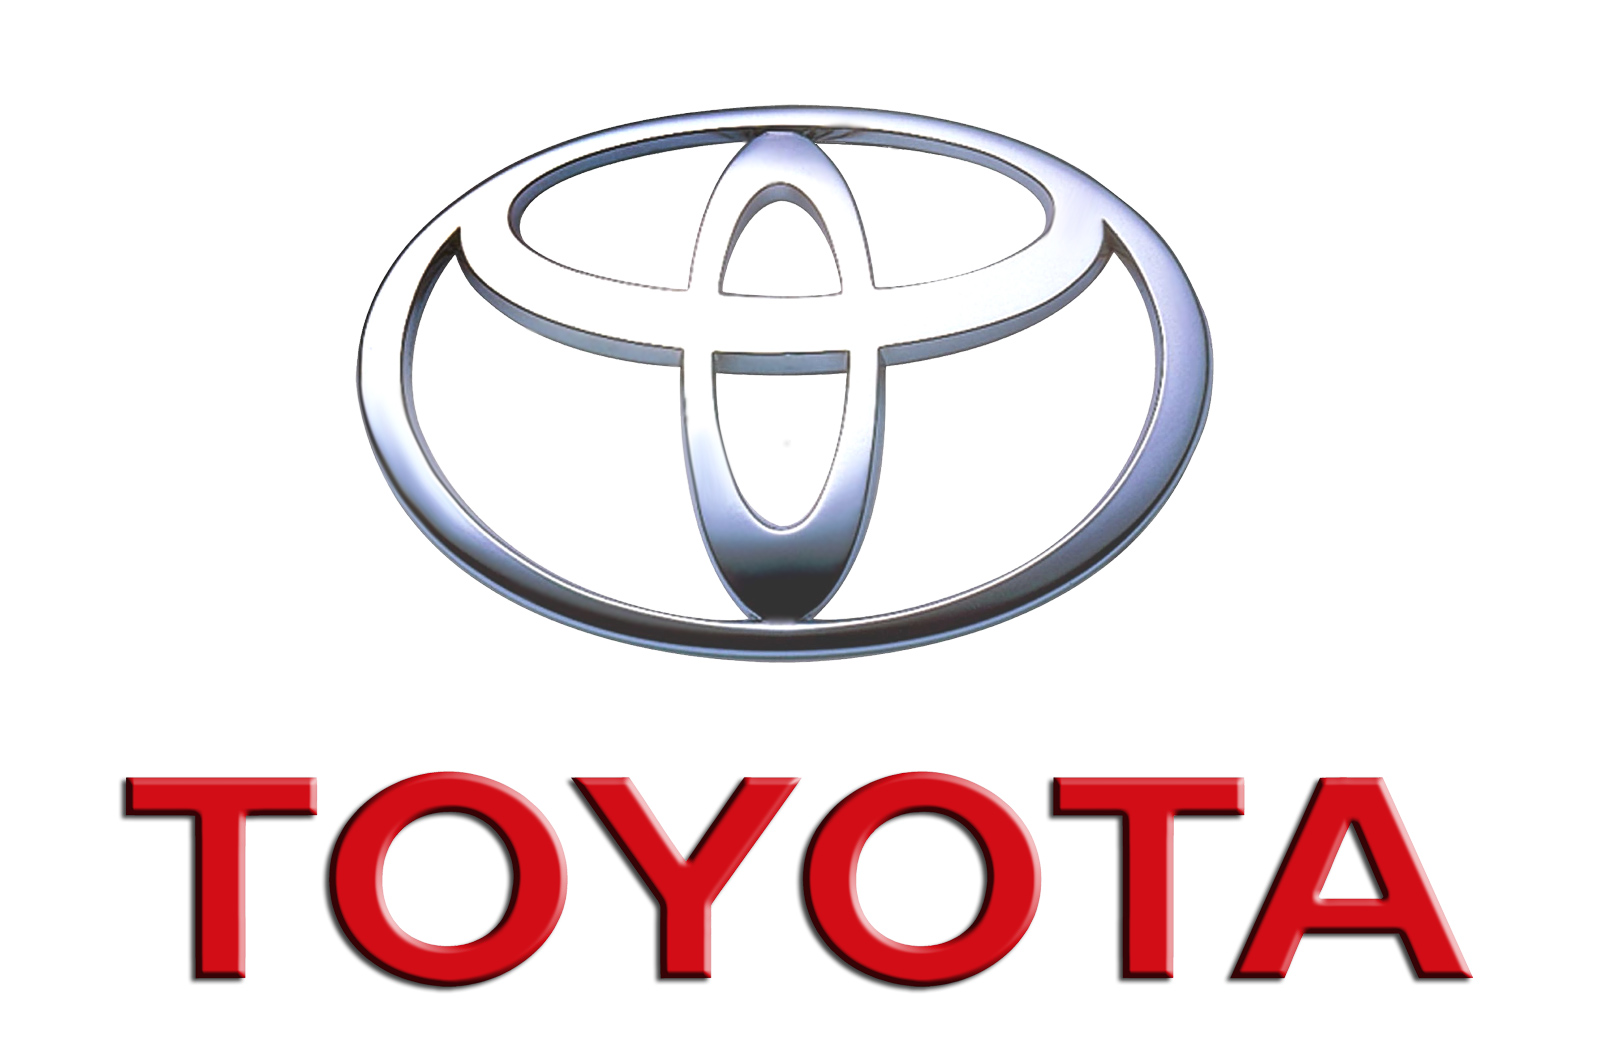 a overview of toyota company Company name, toyota digital cruise, inc president, tetsuya oshima  establishment, apr 1996 capital, 800 million yen description of business, 1.